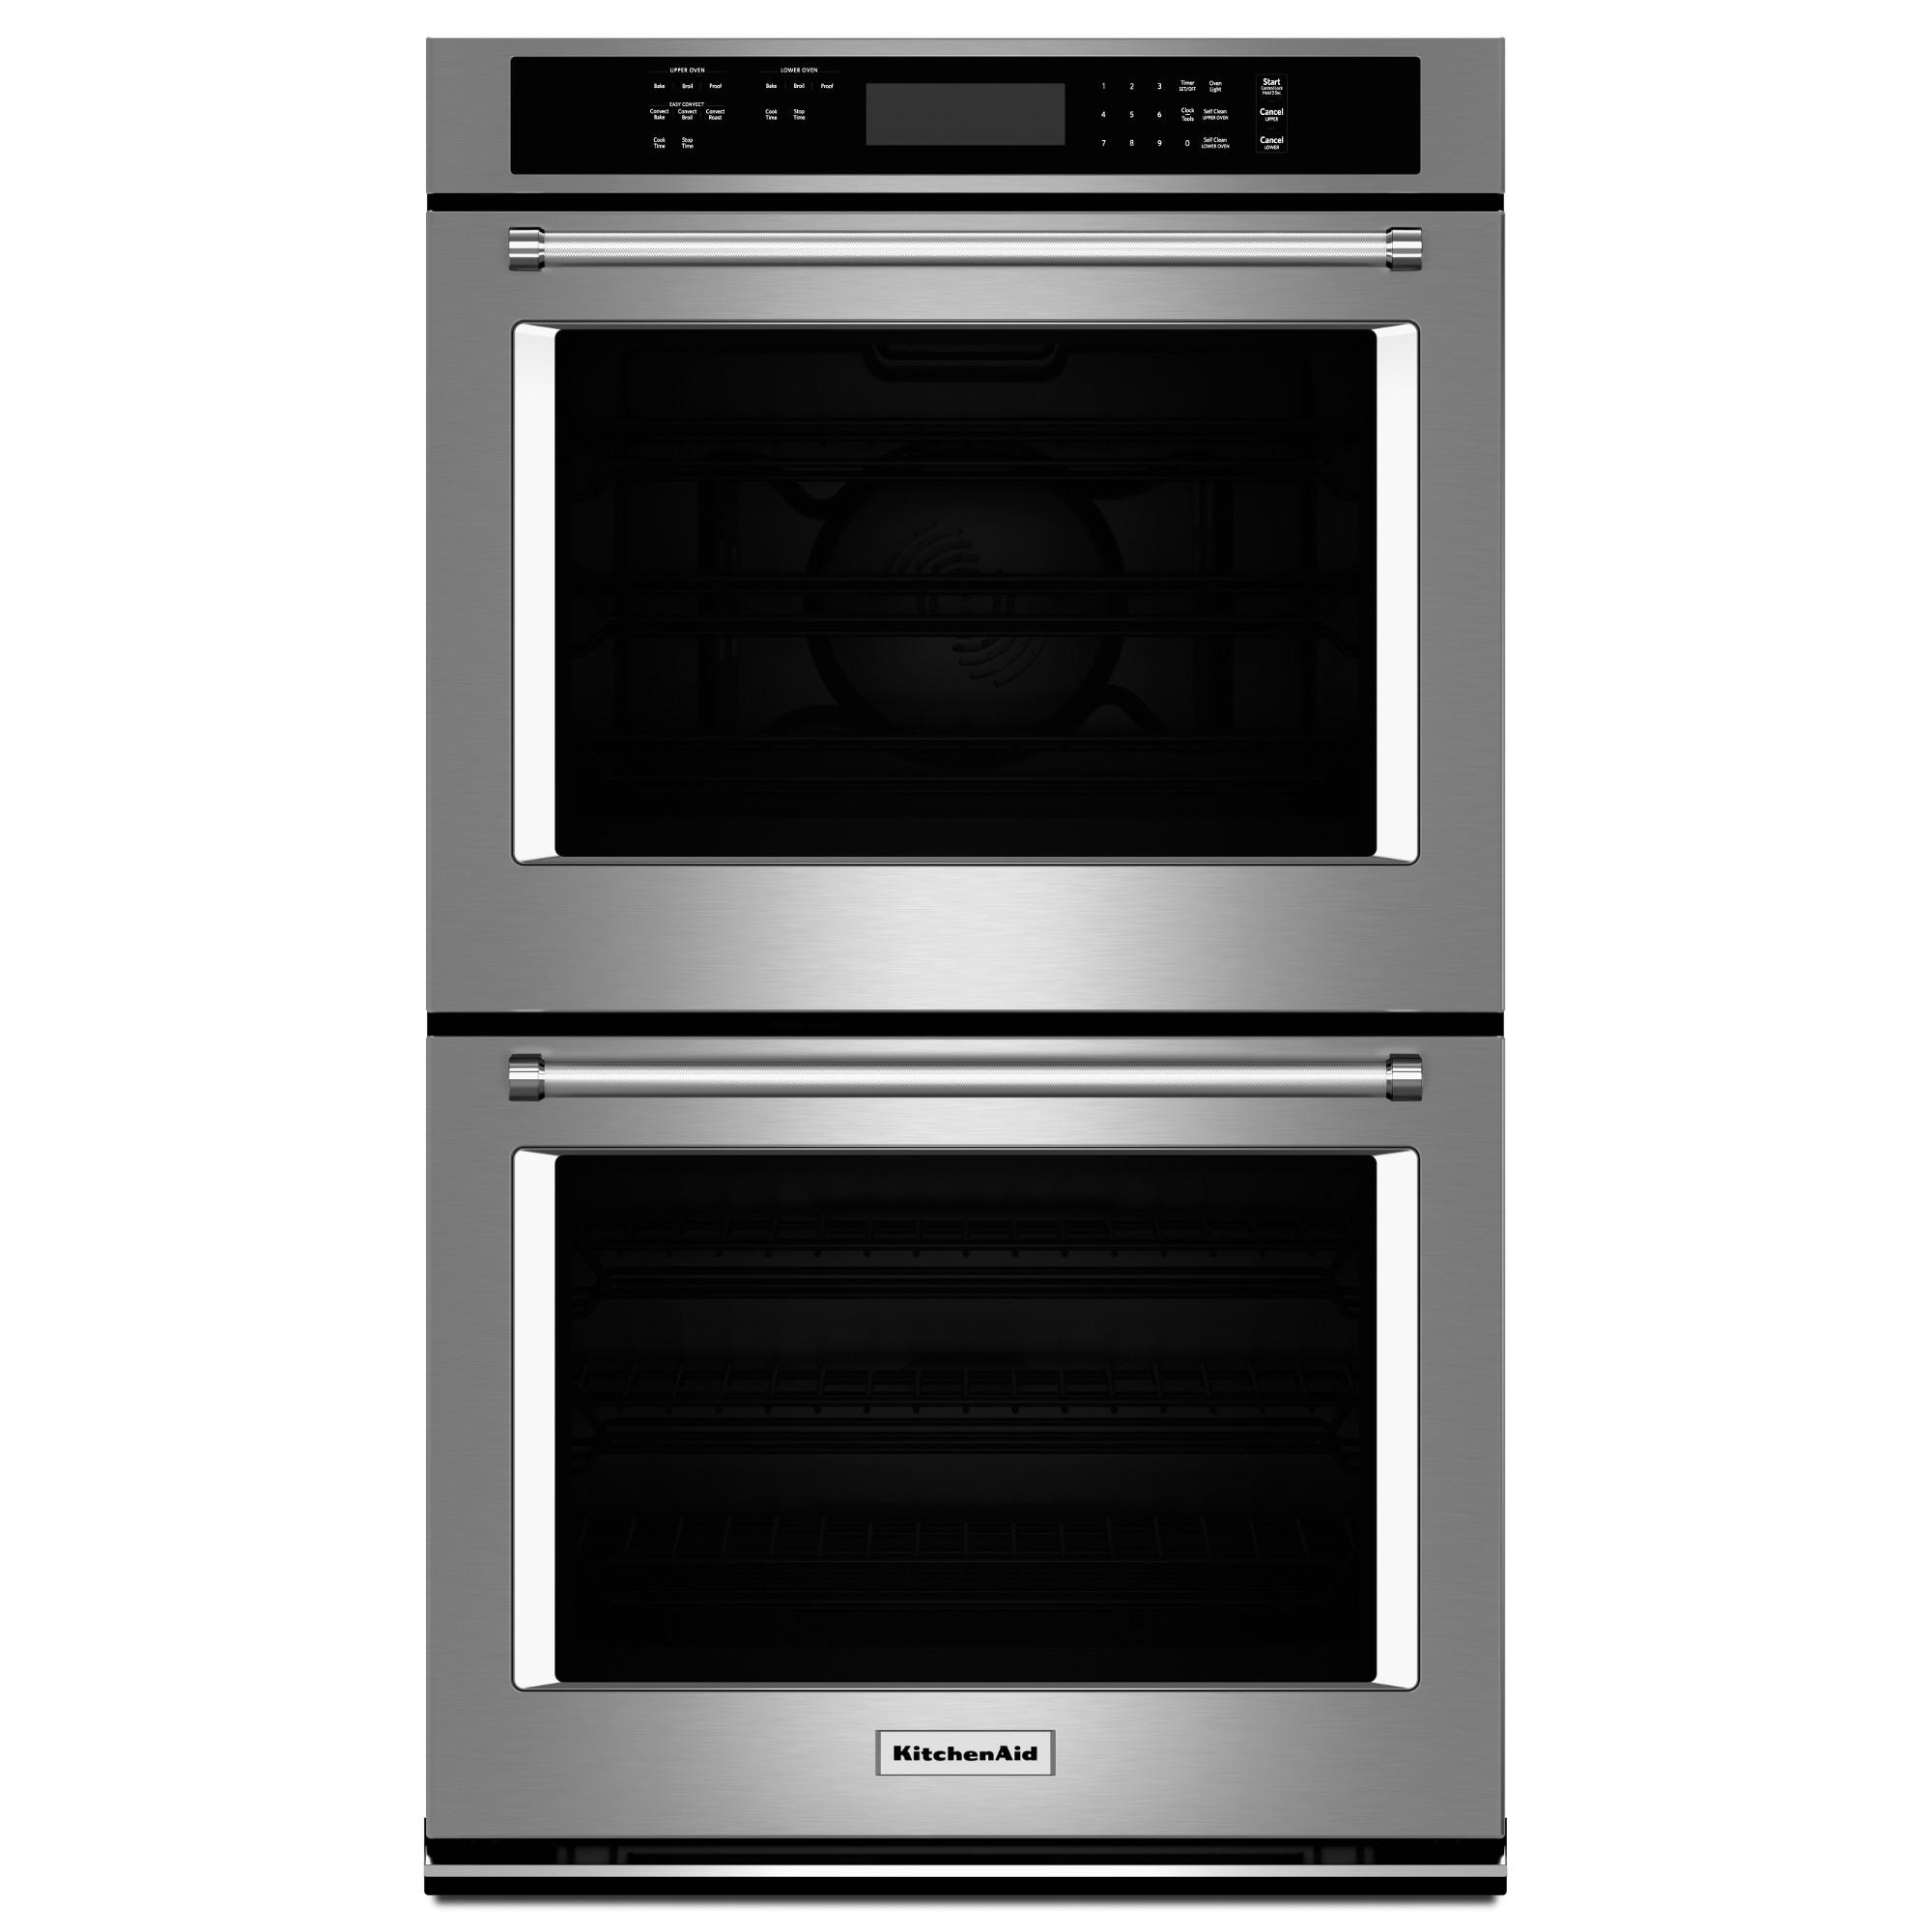 KitchenAid KODE300ESS 5.0 cu. ft. each Double Wall Oven w/ Even-Heat™ True Convection - Stainless Steel